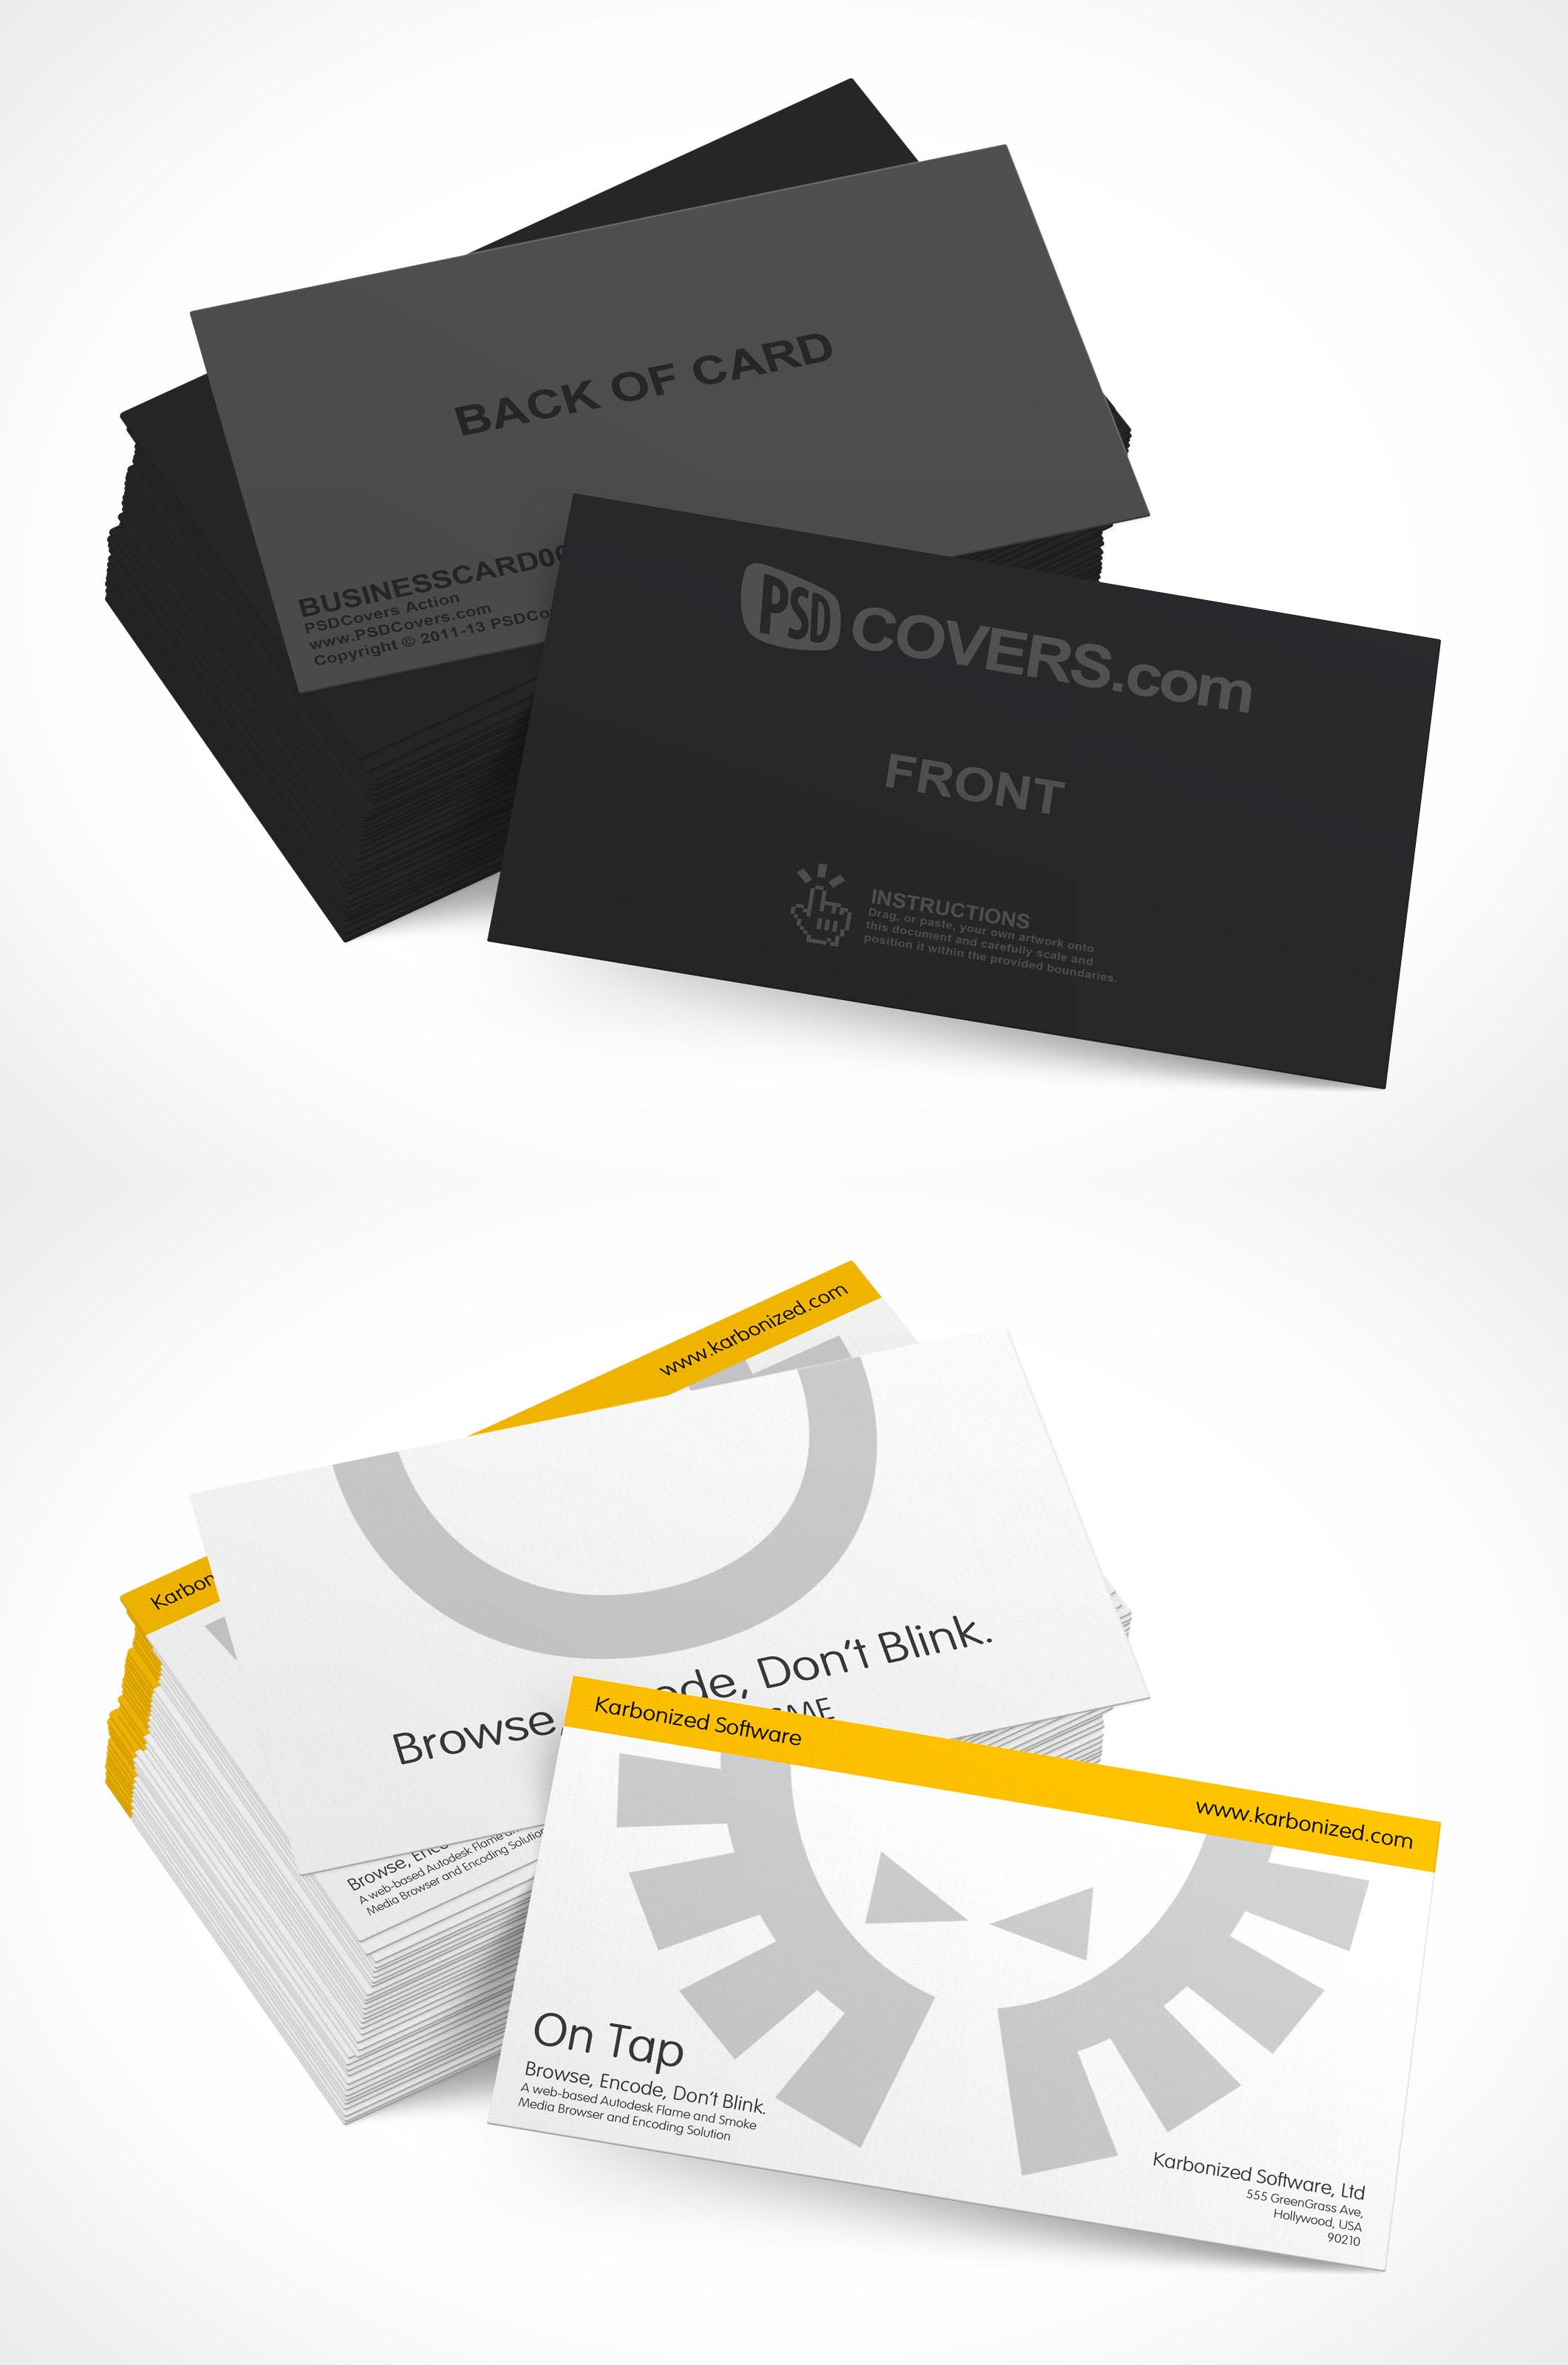 business card presentation template psd - presentation template psd choice image professional